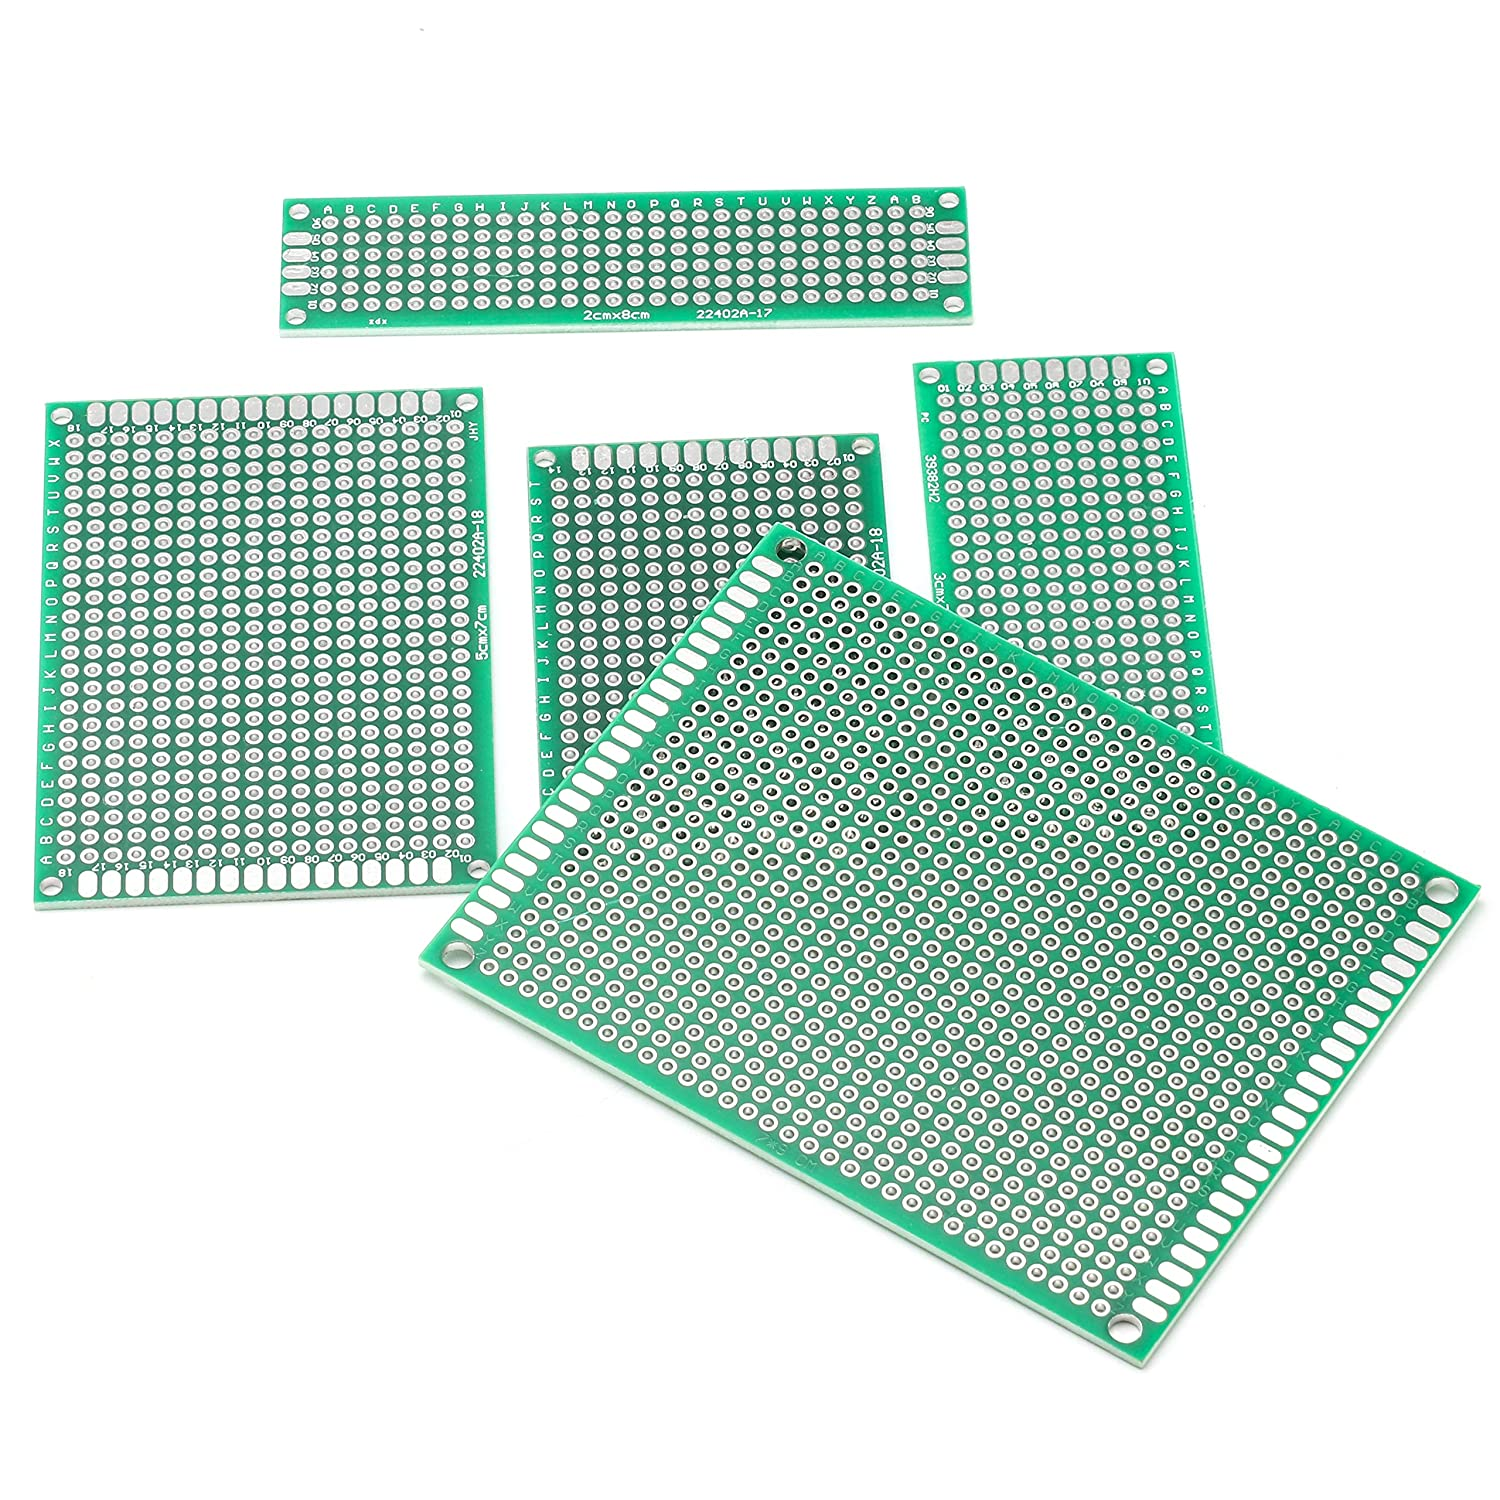 5 Size Universal untraced Perforated Printed Circuits Boards Solder-able Circuit Protoboards for DIY Soldering Electronic Projects DEYUE 40PCs PCB Double-Sided Prototyping PCBs Circuit Boards Kit